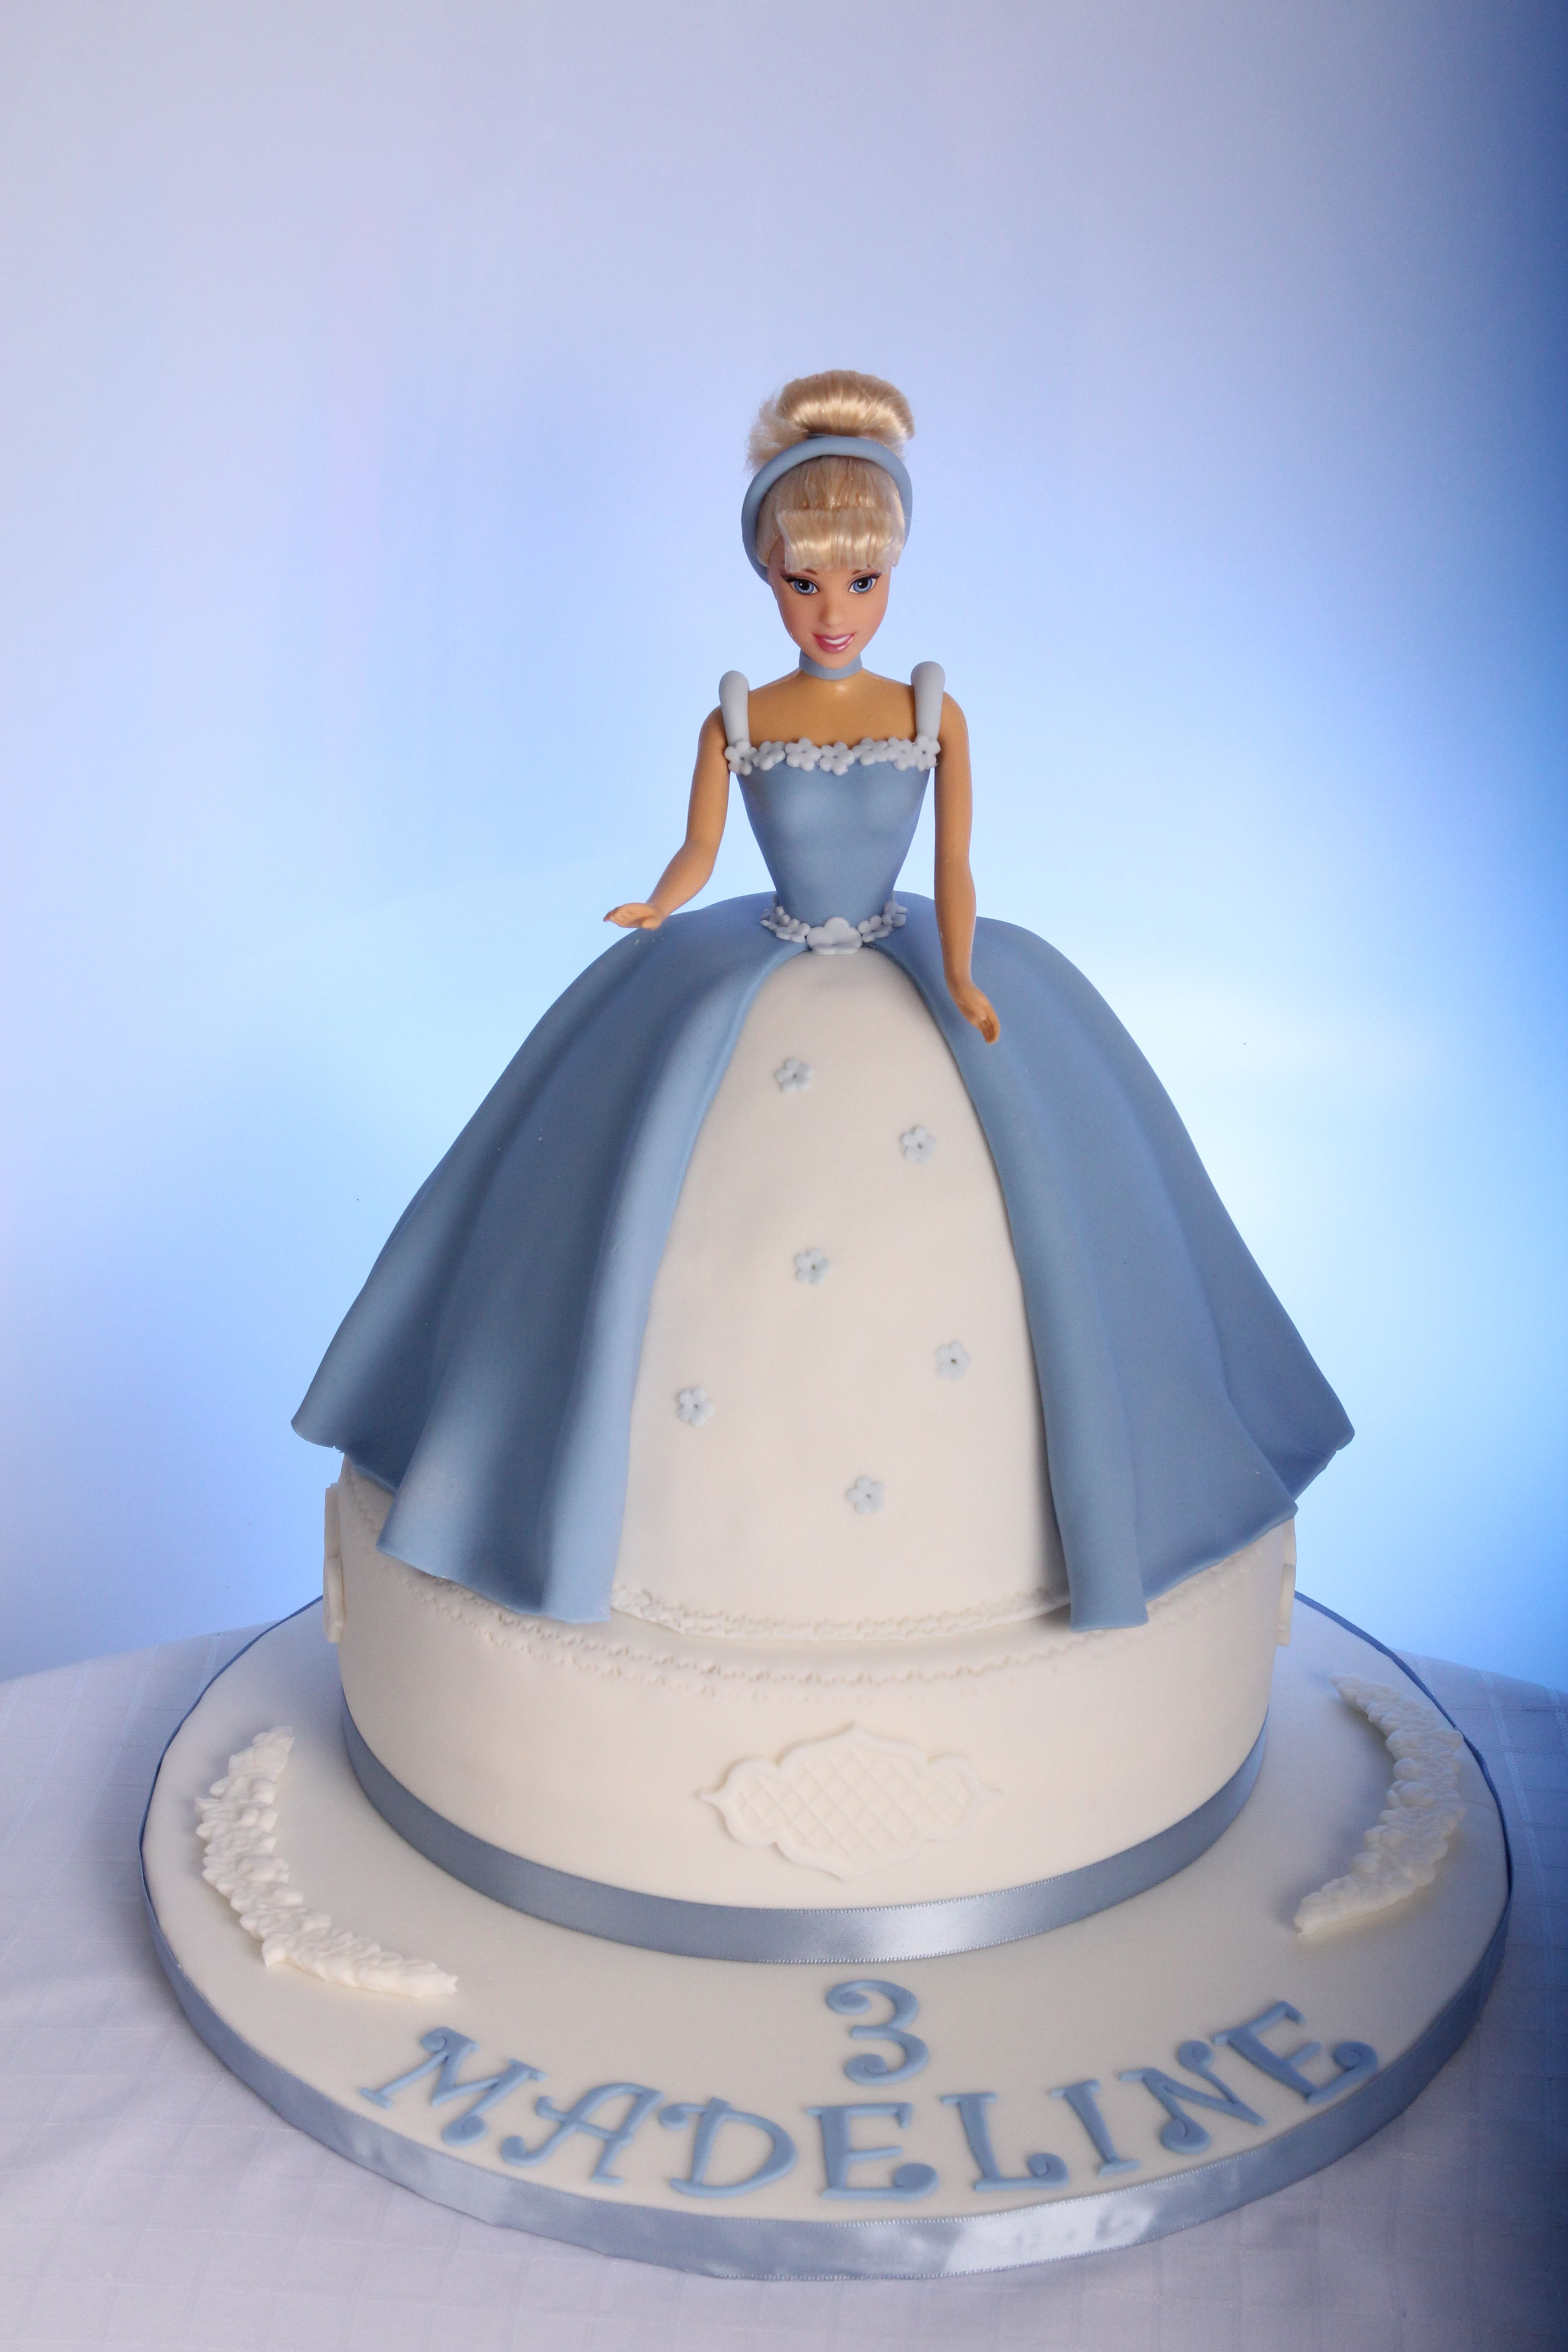 Princess Cake Cinderella Cake Cinderella Cake Barbie Doll Cakes Doll Cake